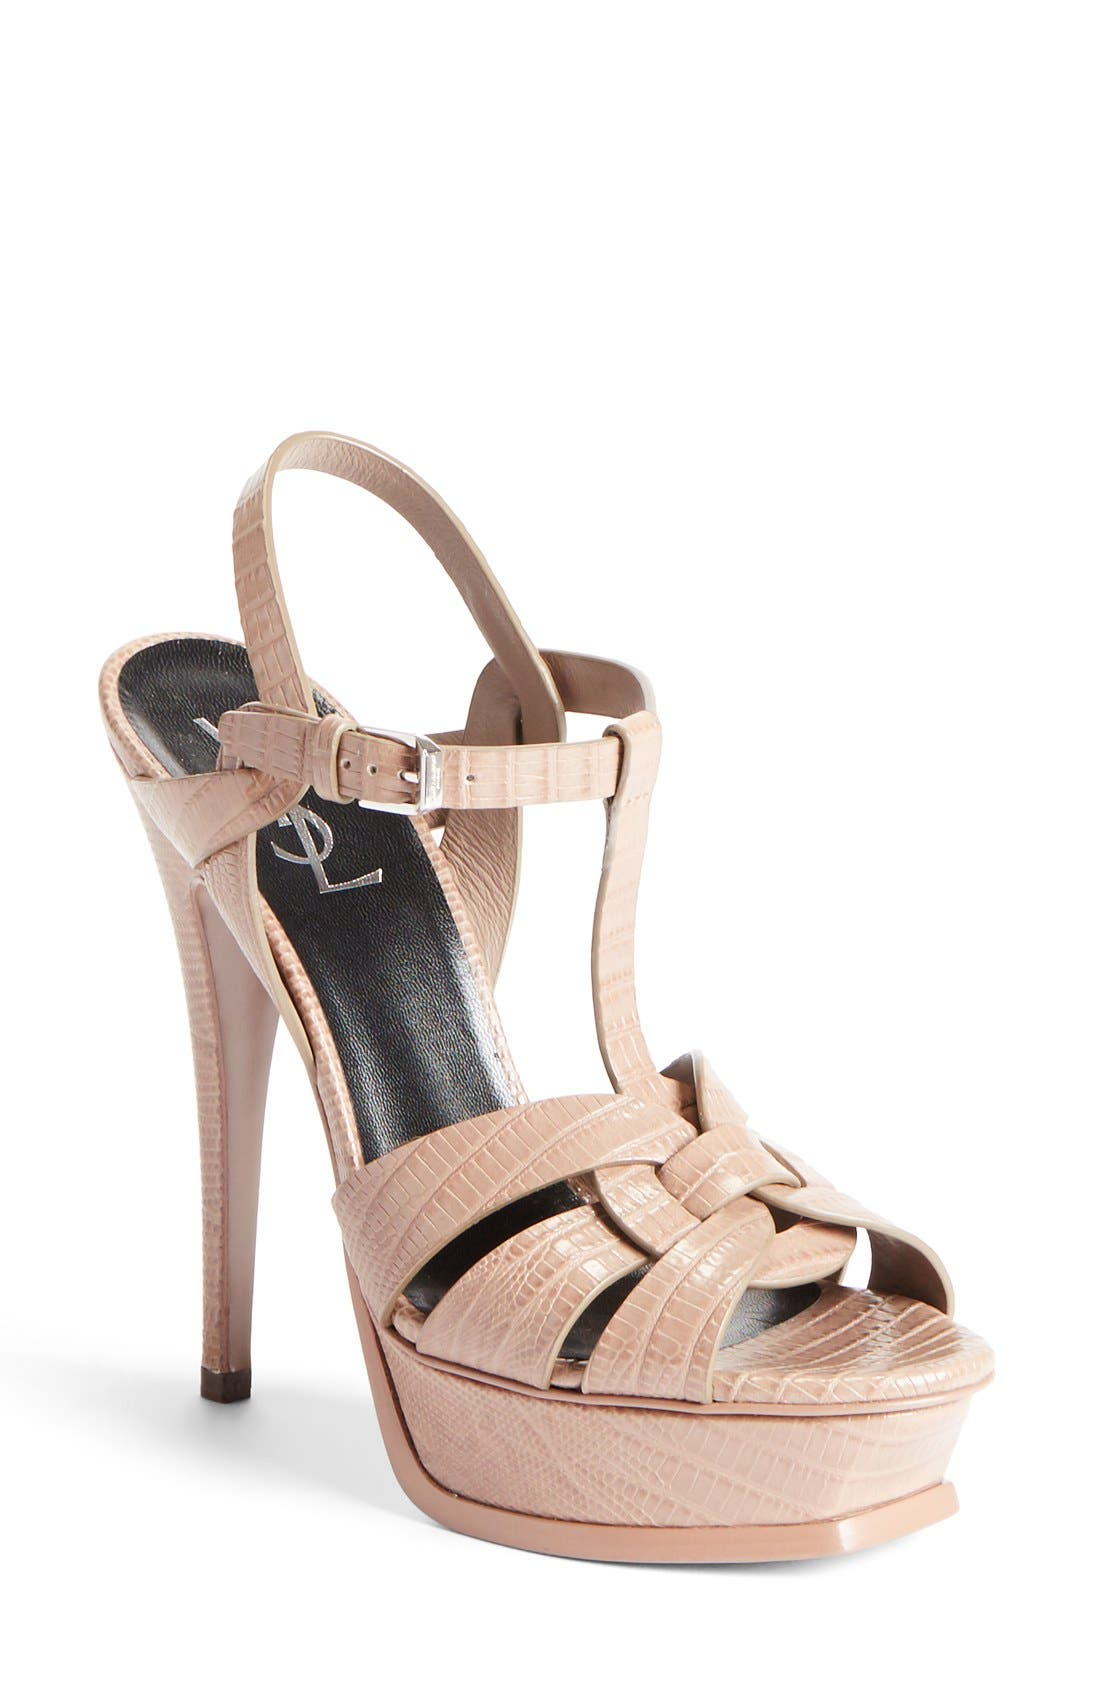 'Tribute' Sandal,                             Main thumbnail 1, color,                             250